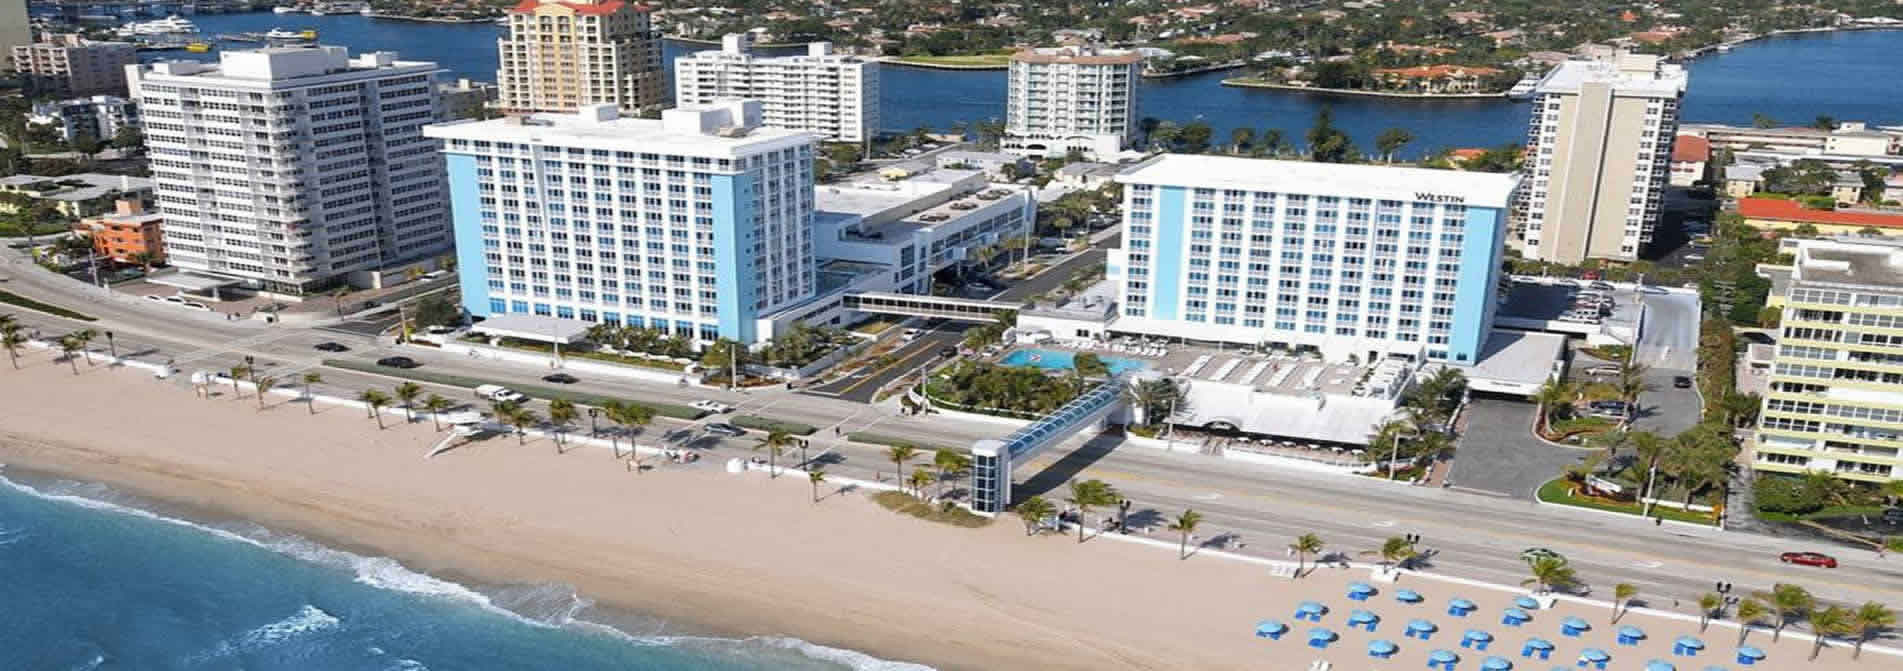 Cheap Hotels In Fort Lauderdale Near Beach